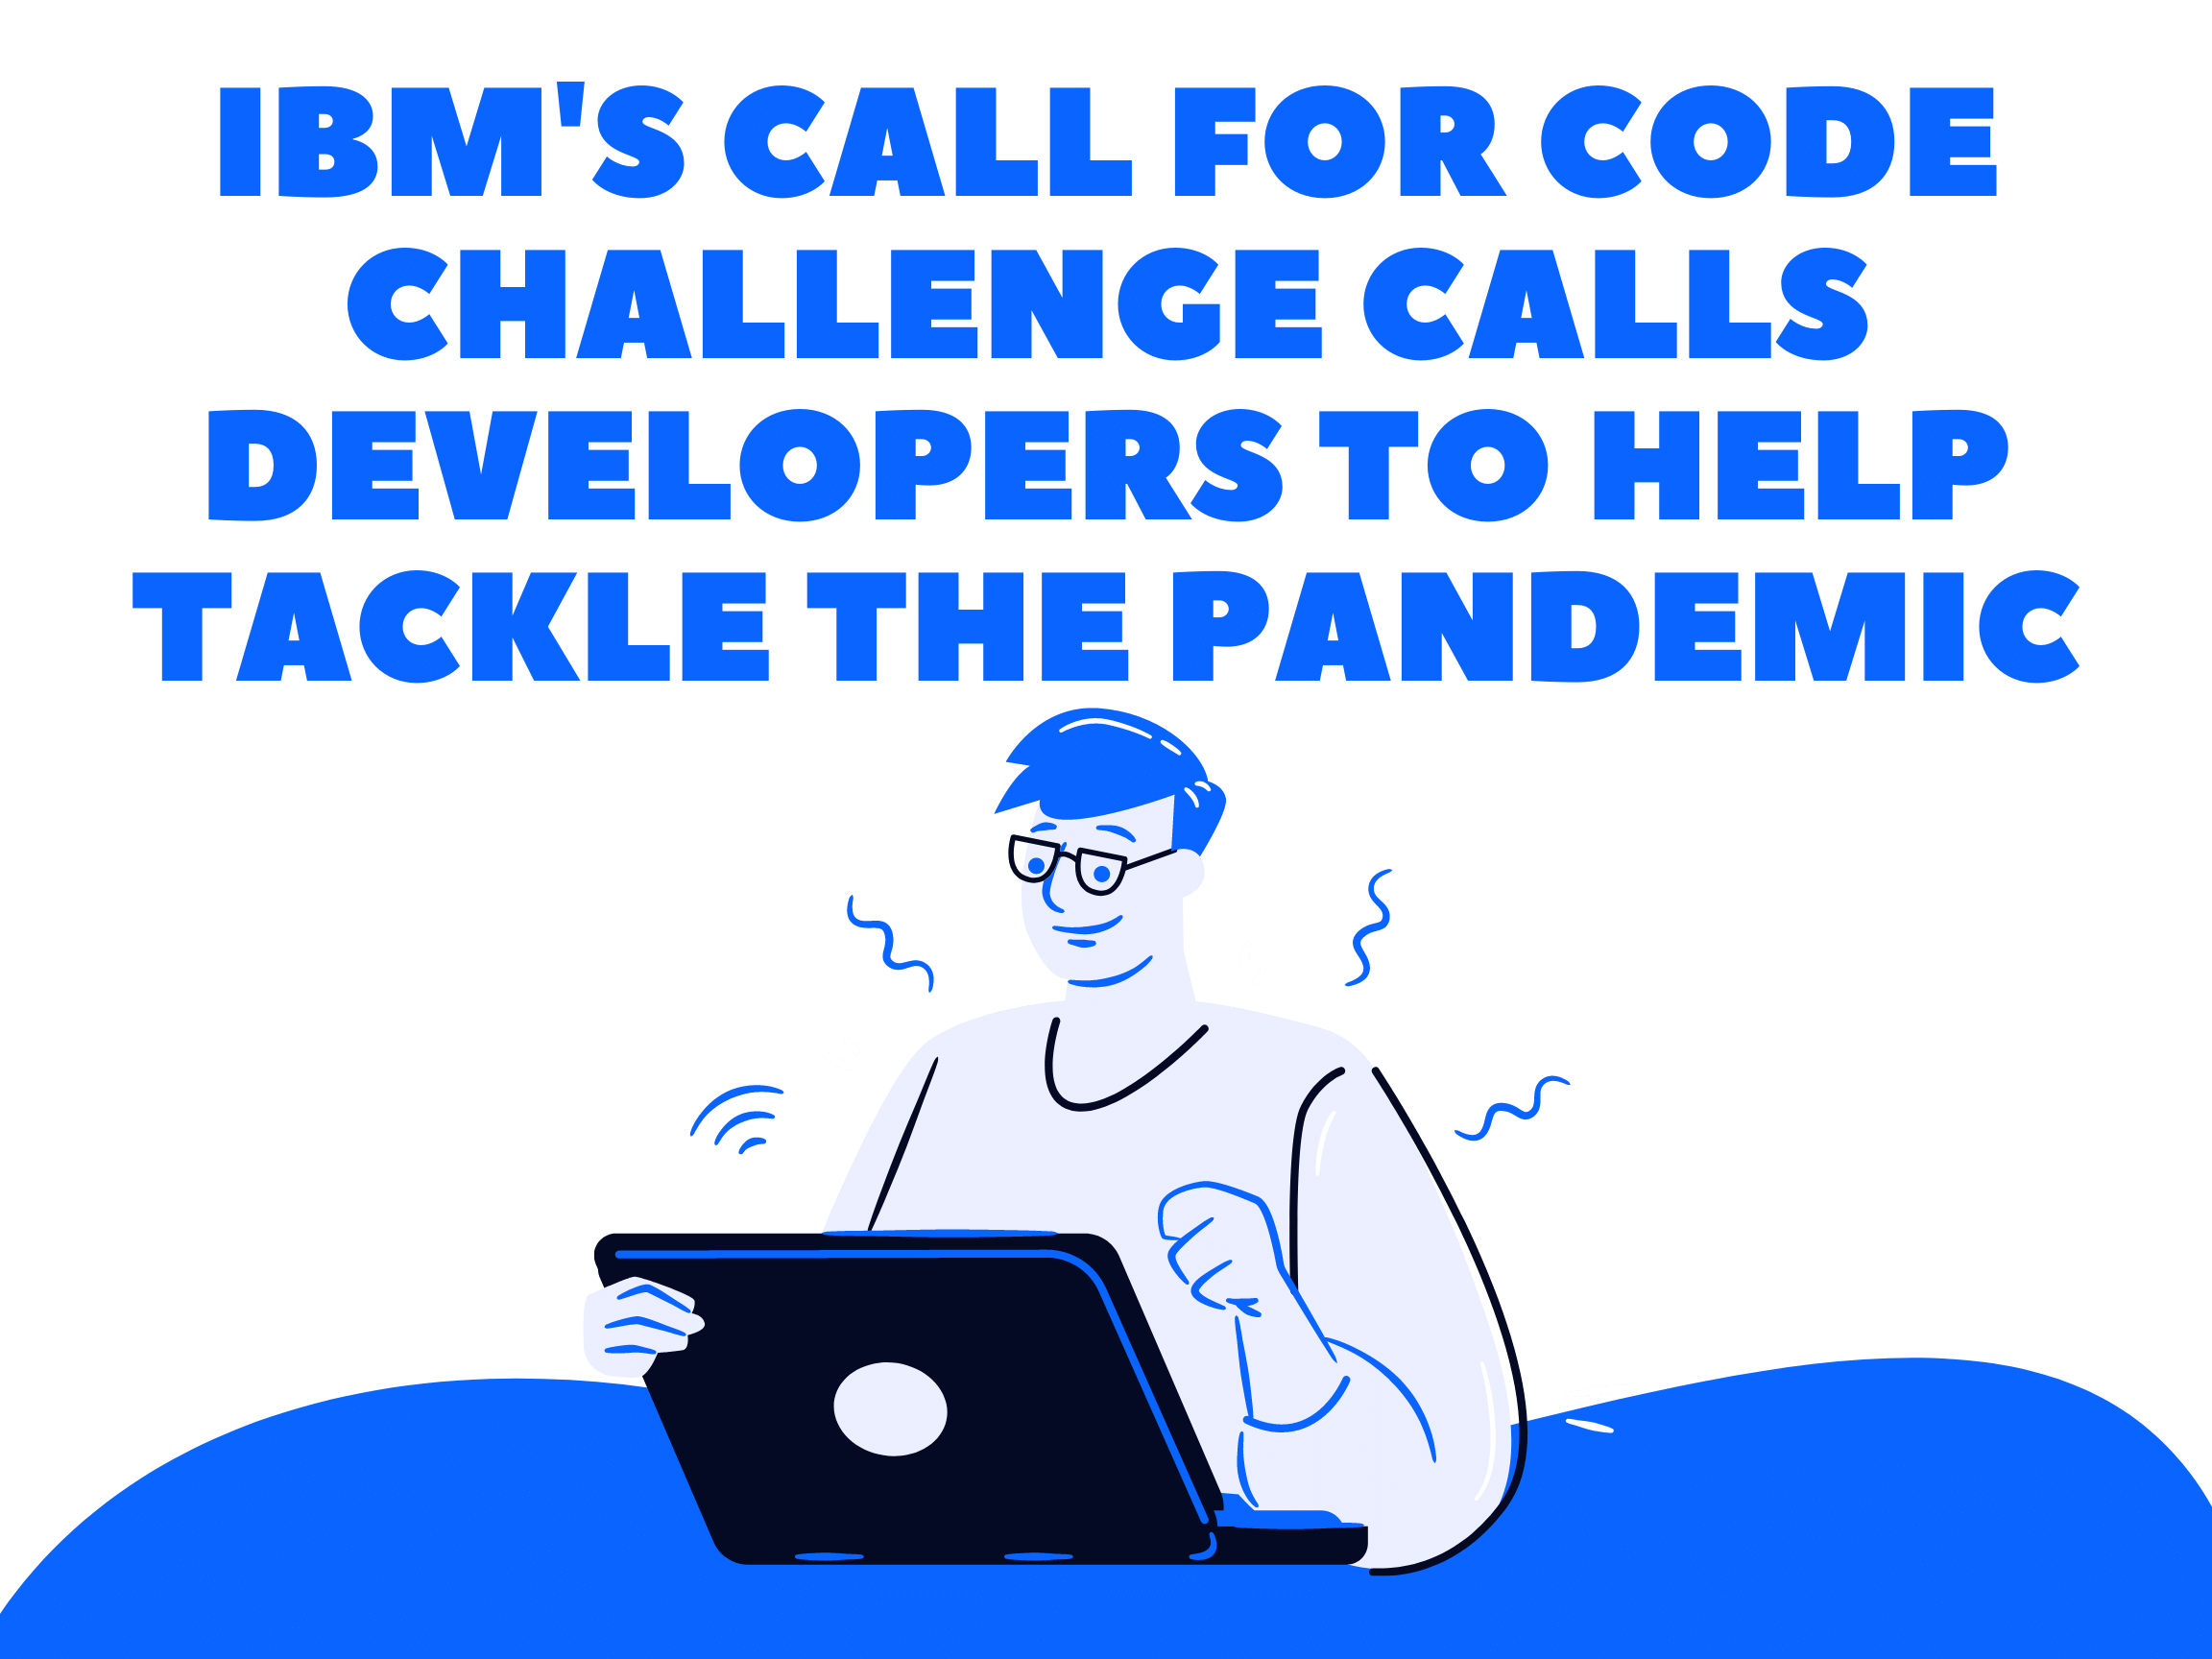 IBM's Call for Code Challenge Calls Developers to help tackle the Pandemic